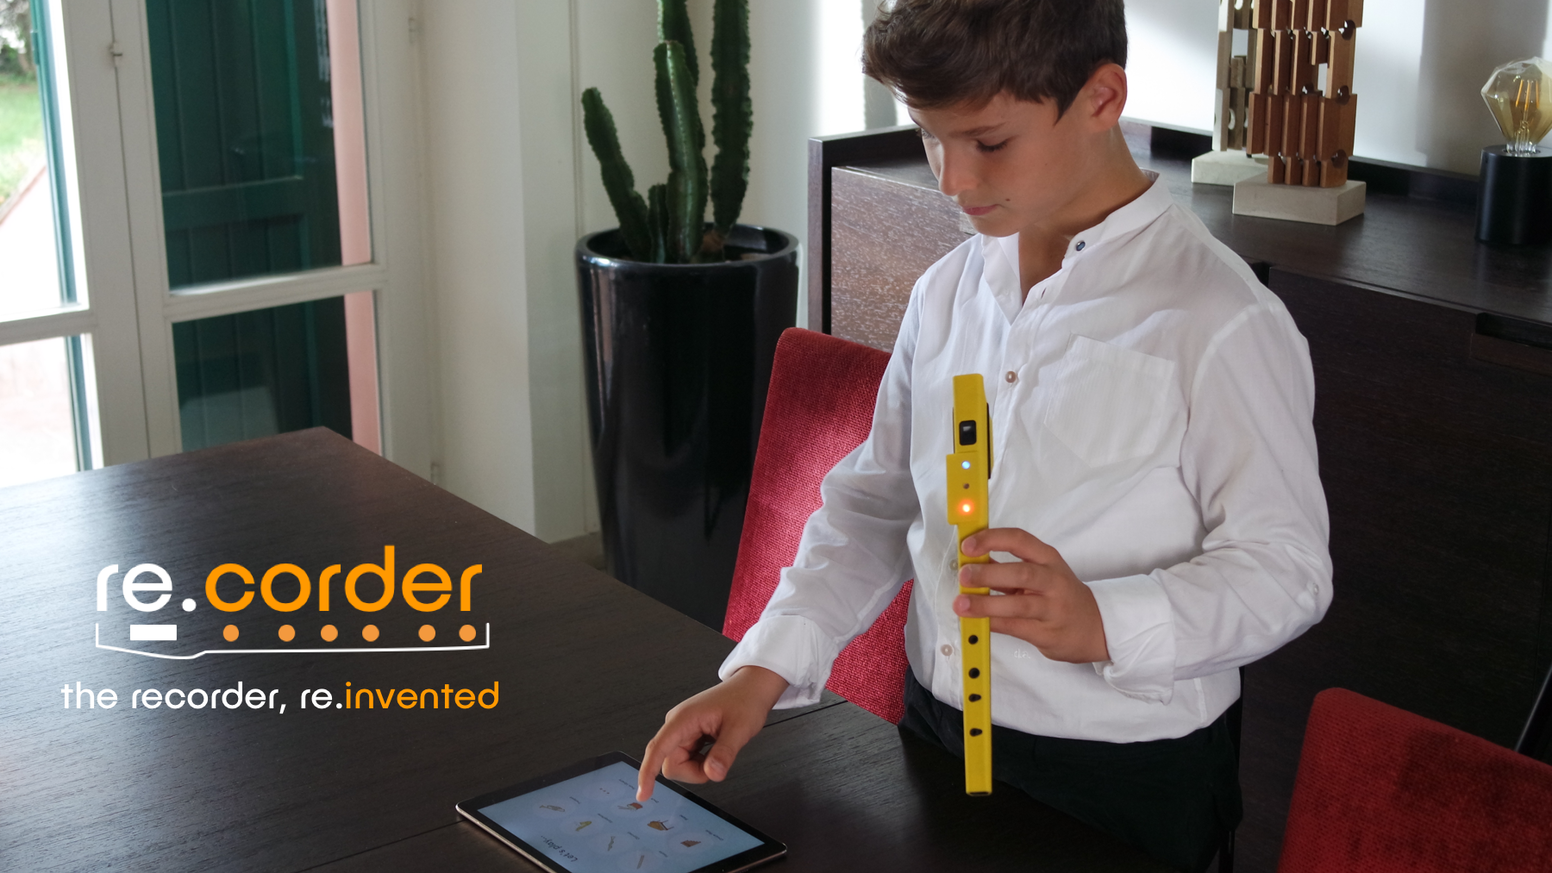 A modern take on one of the widest used educational instruments in school. Stimulating music learning and creation.